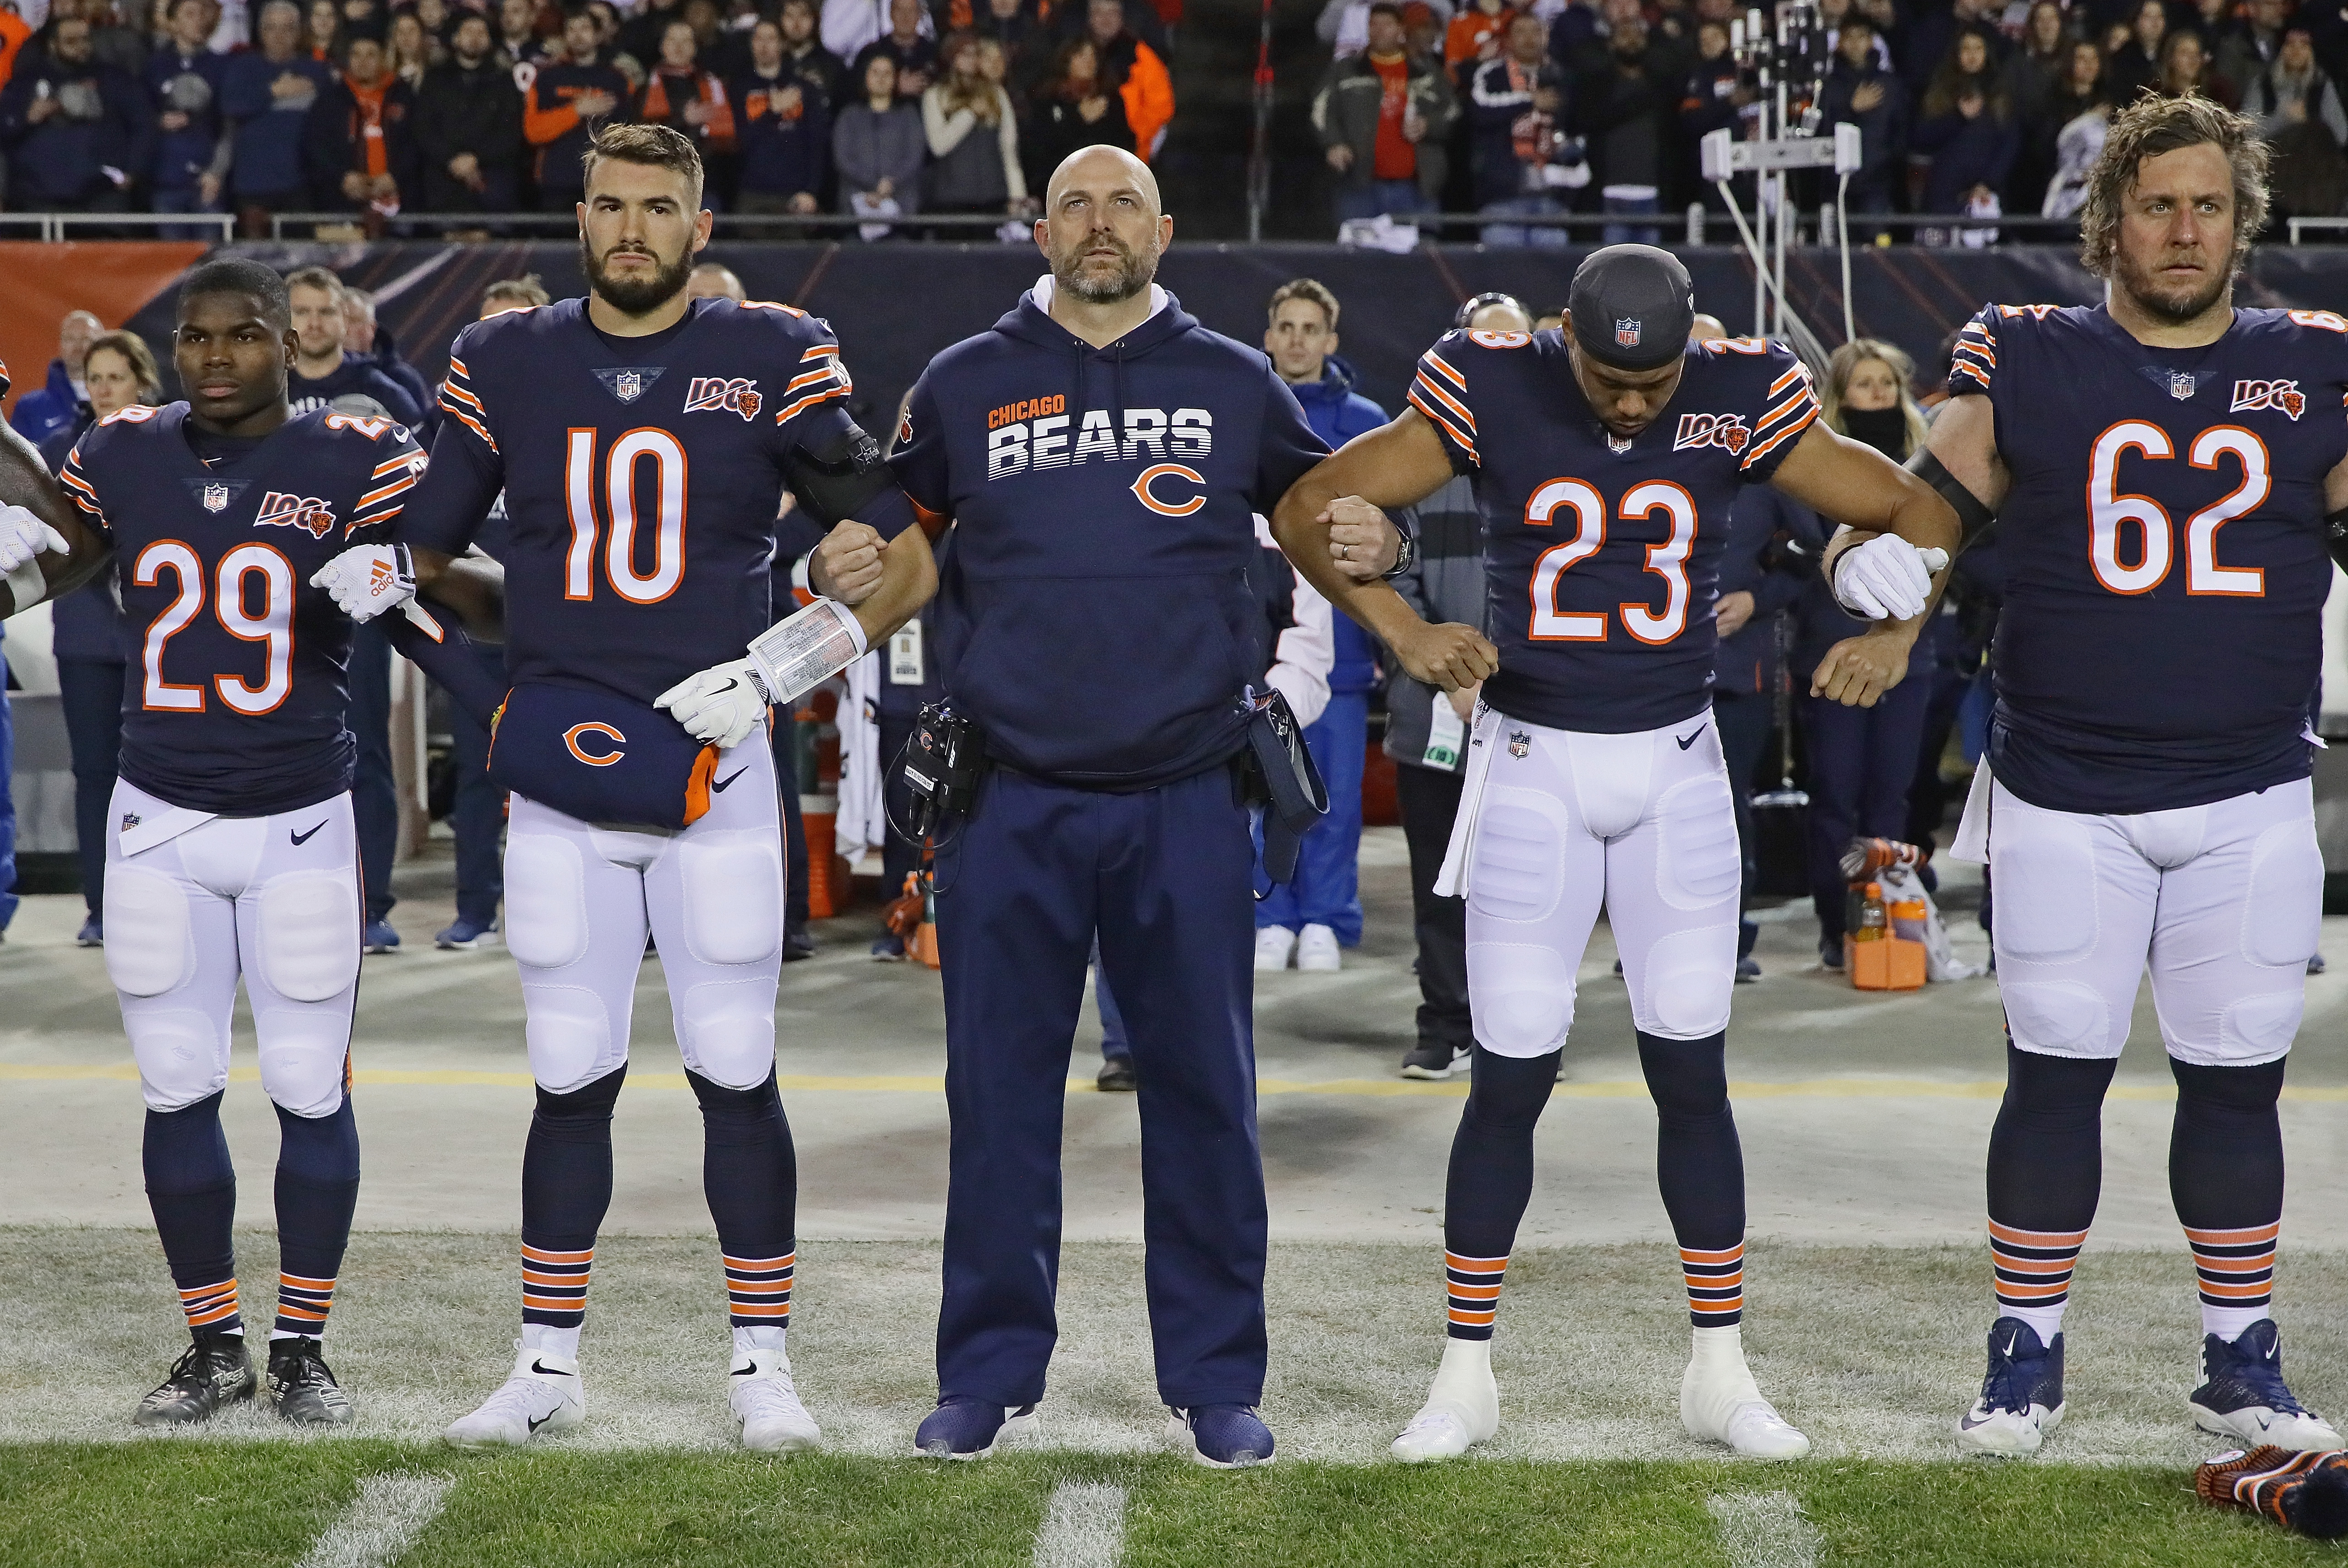 Bears coach Matt Nagy stands with Tarik Cohen, Mitch Trubisky, Kyle Fuller and Ted Larsen during the national anthem before the Chiefs game.